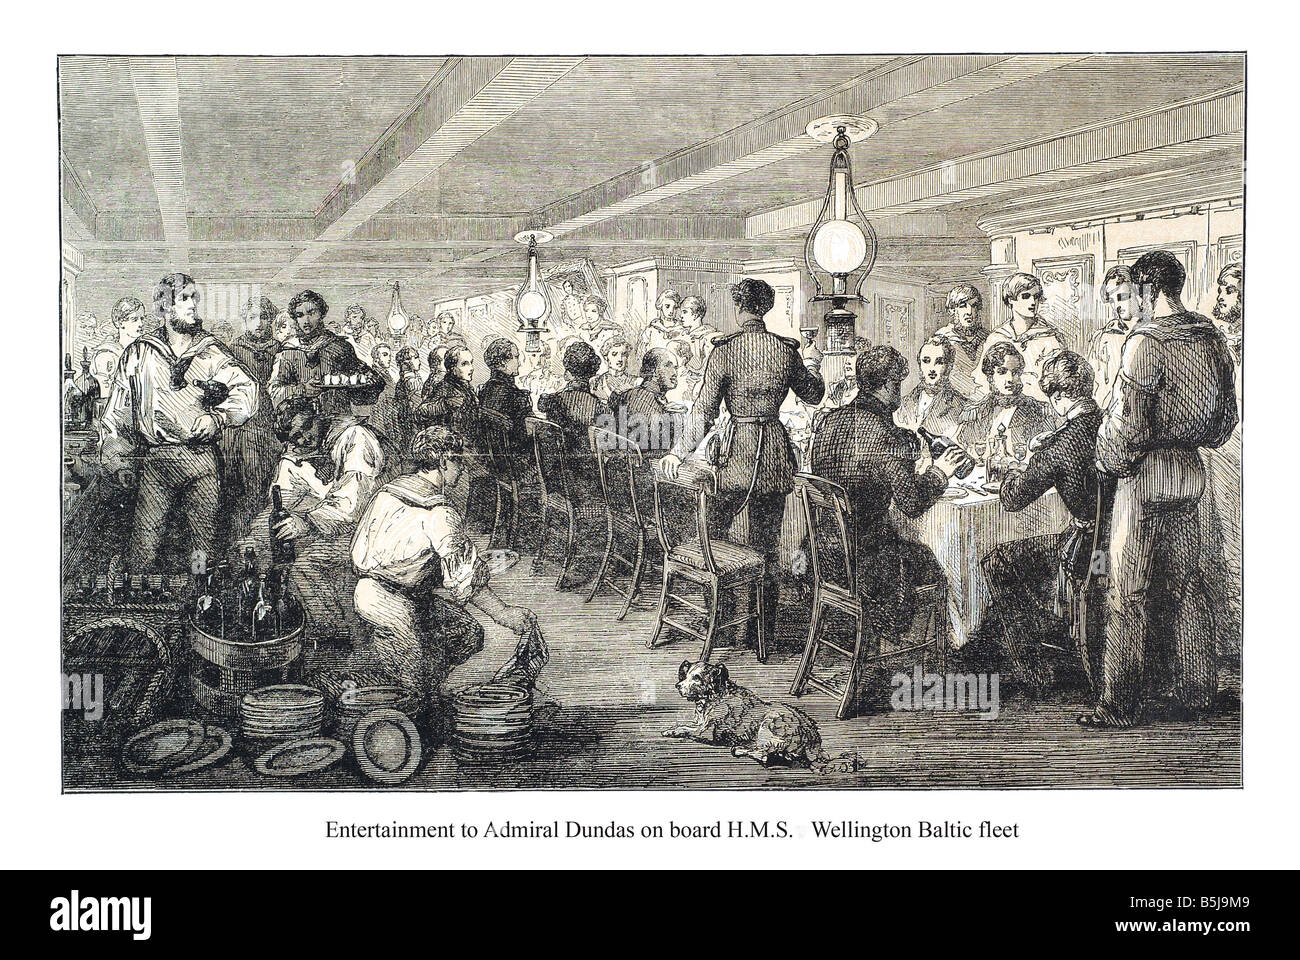 Entertainment to admiral dundas on board h m s Wellington - Stock Image